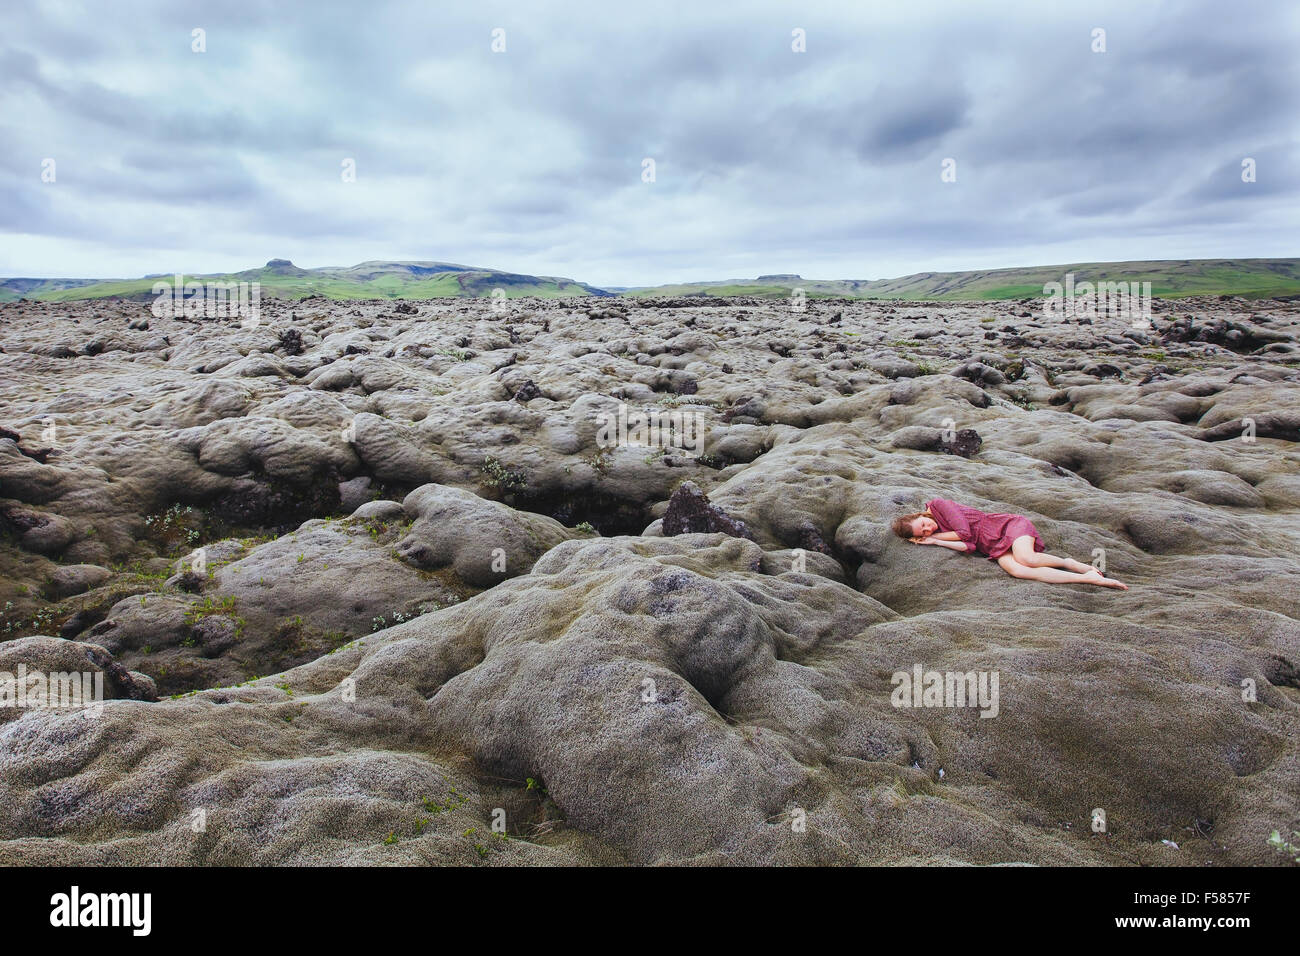 beautiful girl in red dress sleeping in lava field in Iceland, solitude concept - Stock Image